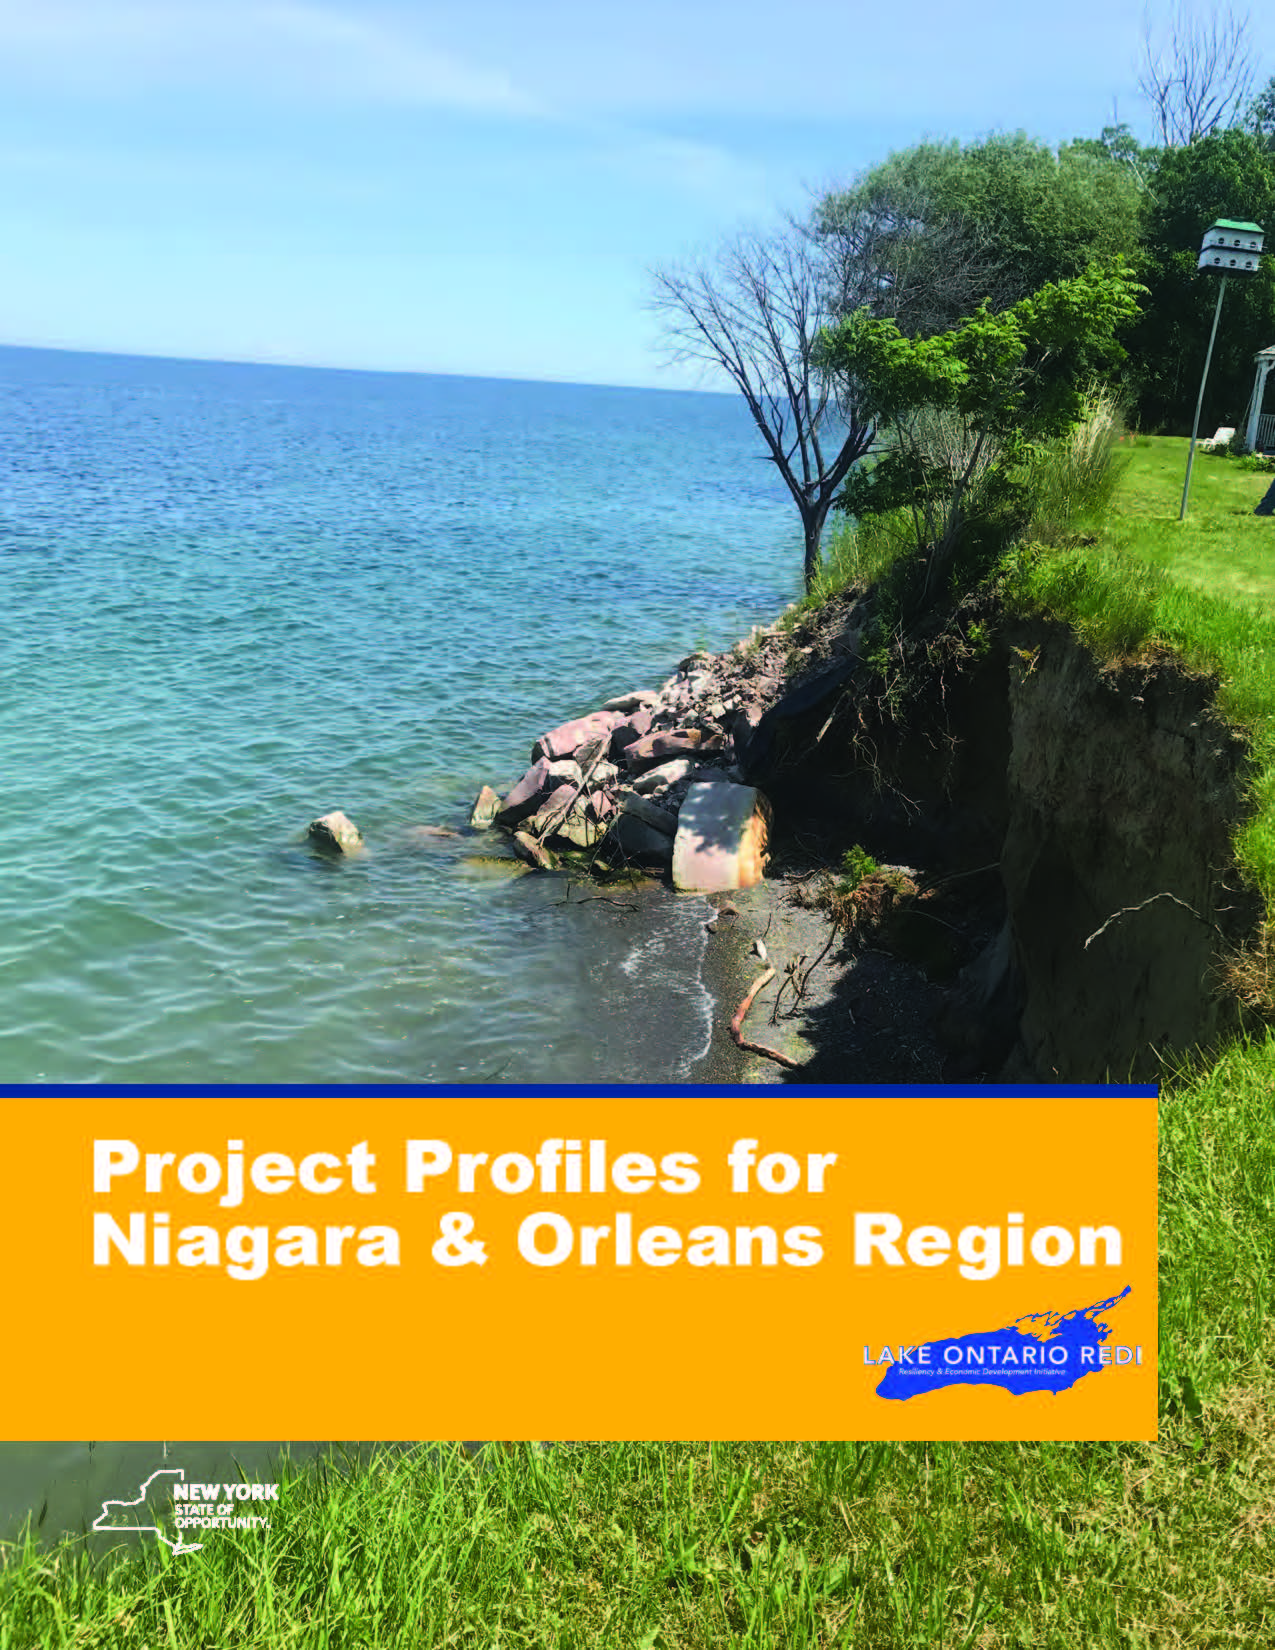 Lake Ontario REDI Projects Receive Tens of Millions in Funding